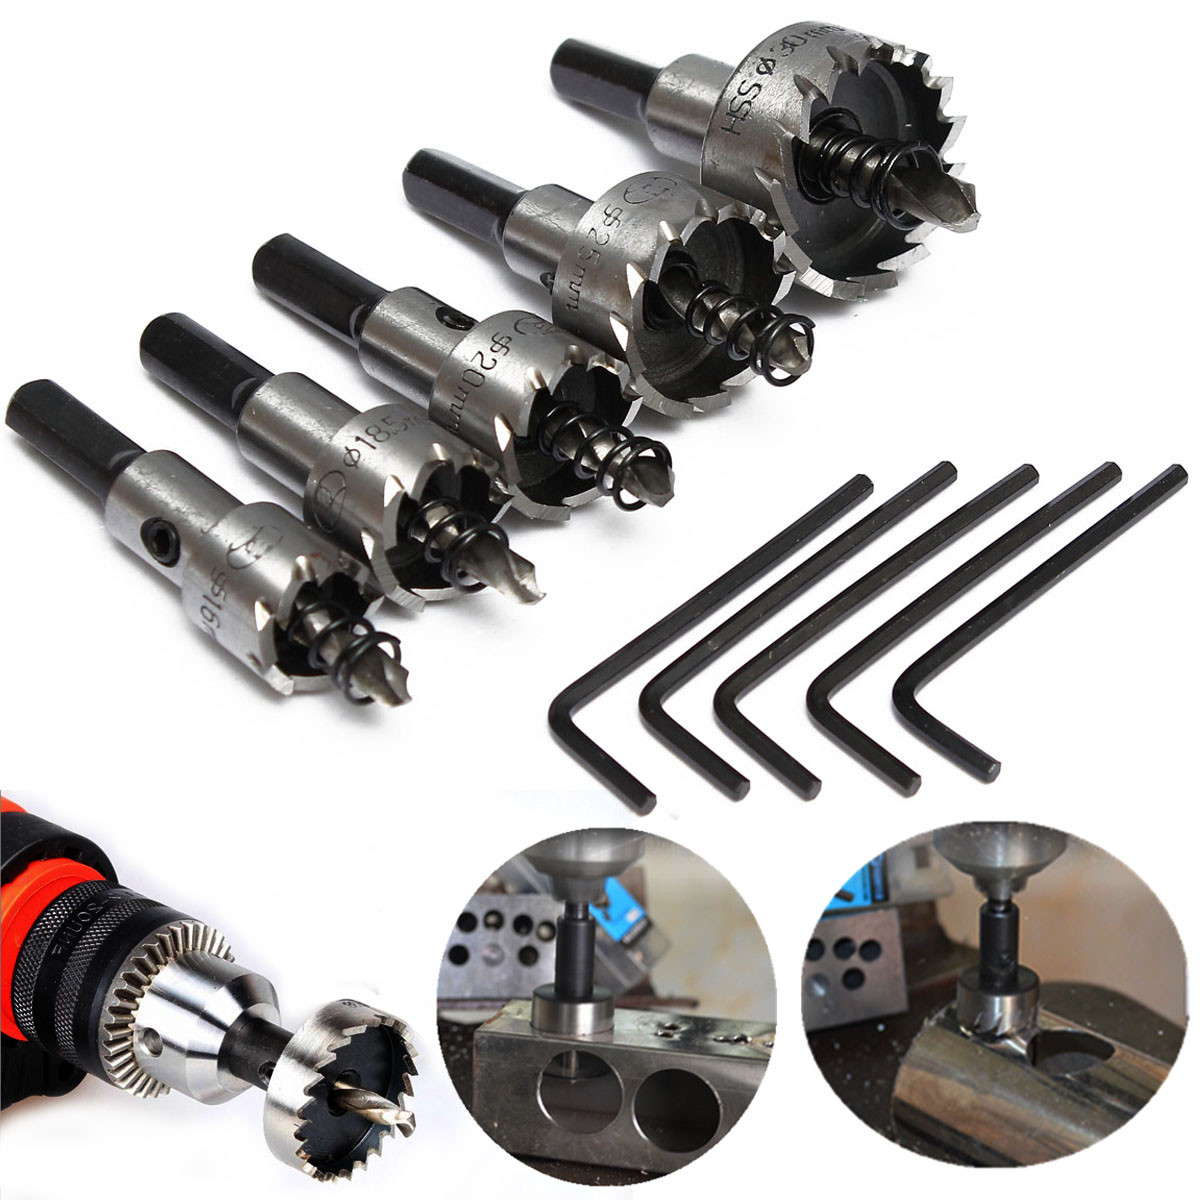 5PCs HSS Drill Bit Hole Saw Set 16-30mm Stainless Steel Titanium Coated  Metal Alloy Wood Hole Cutter + 5 Wrenches